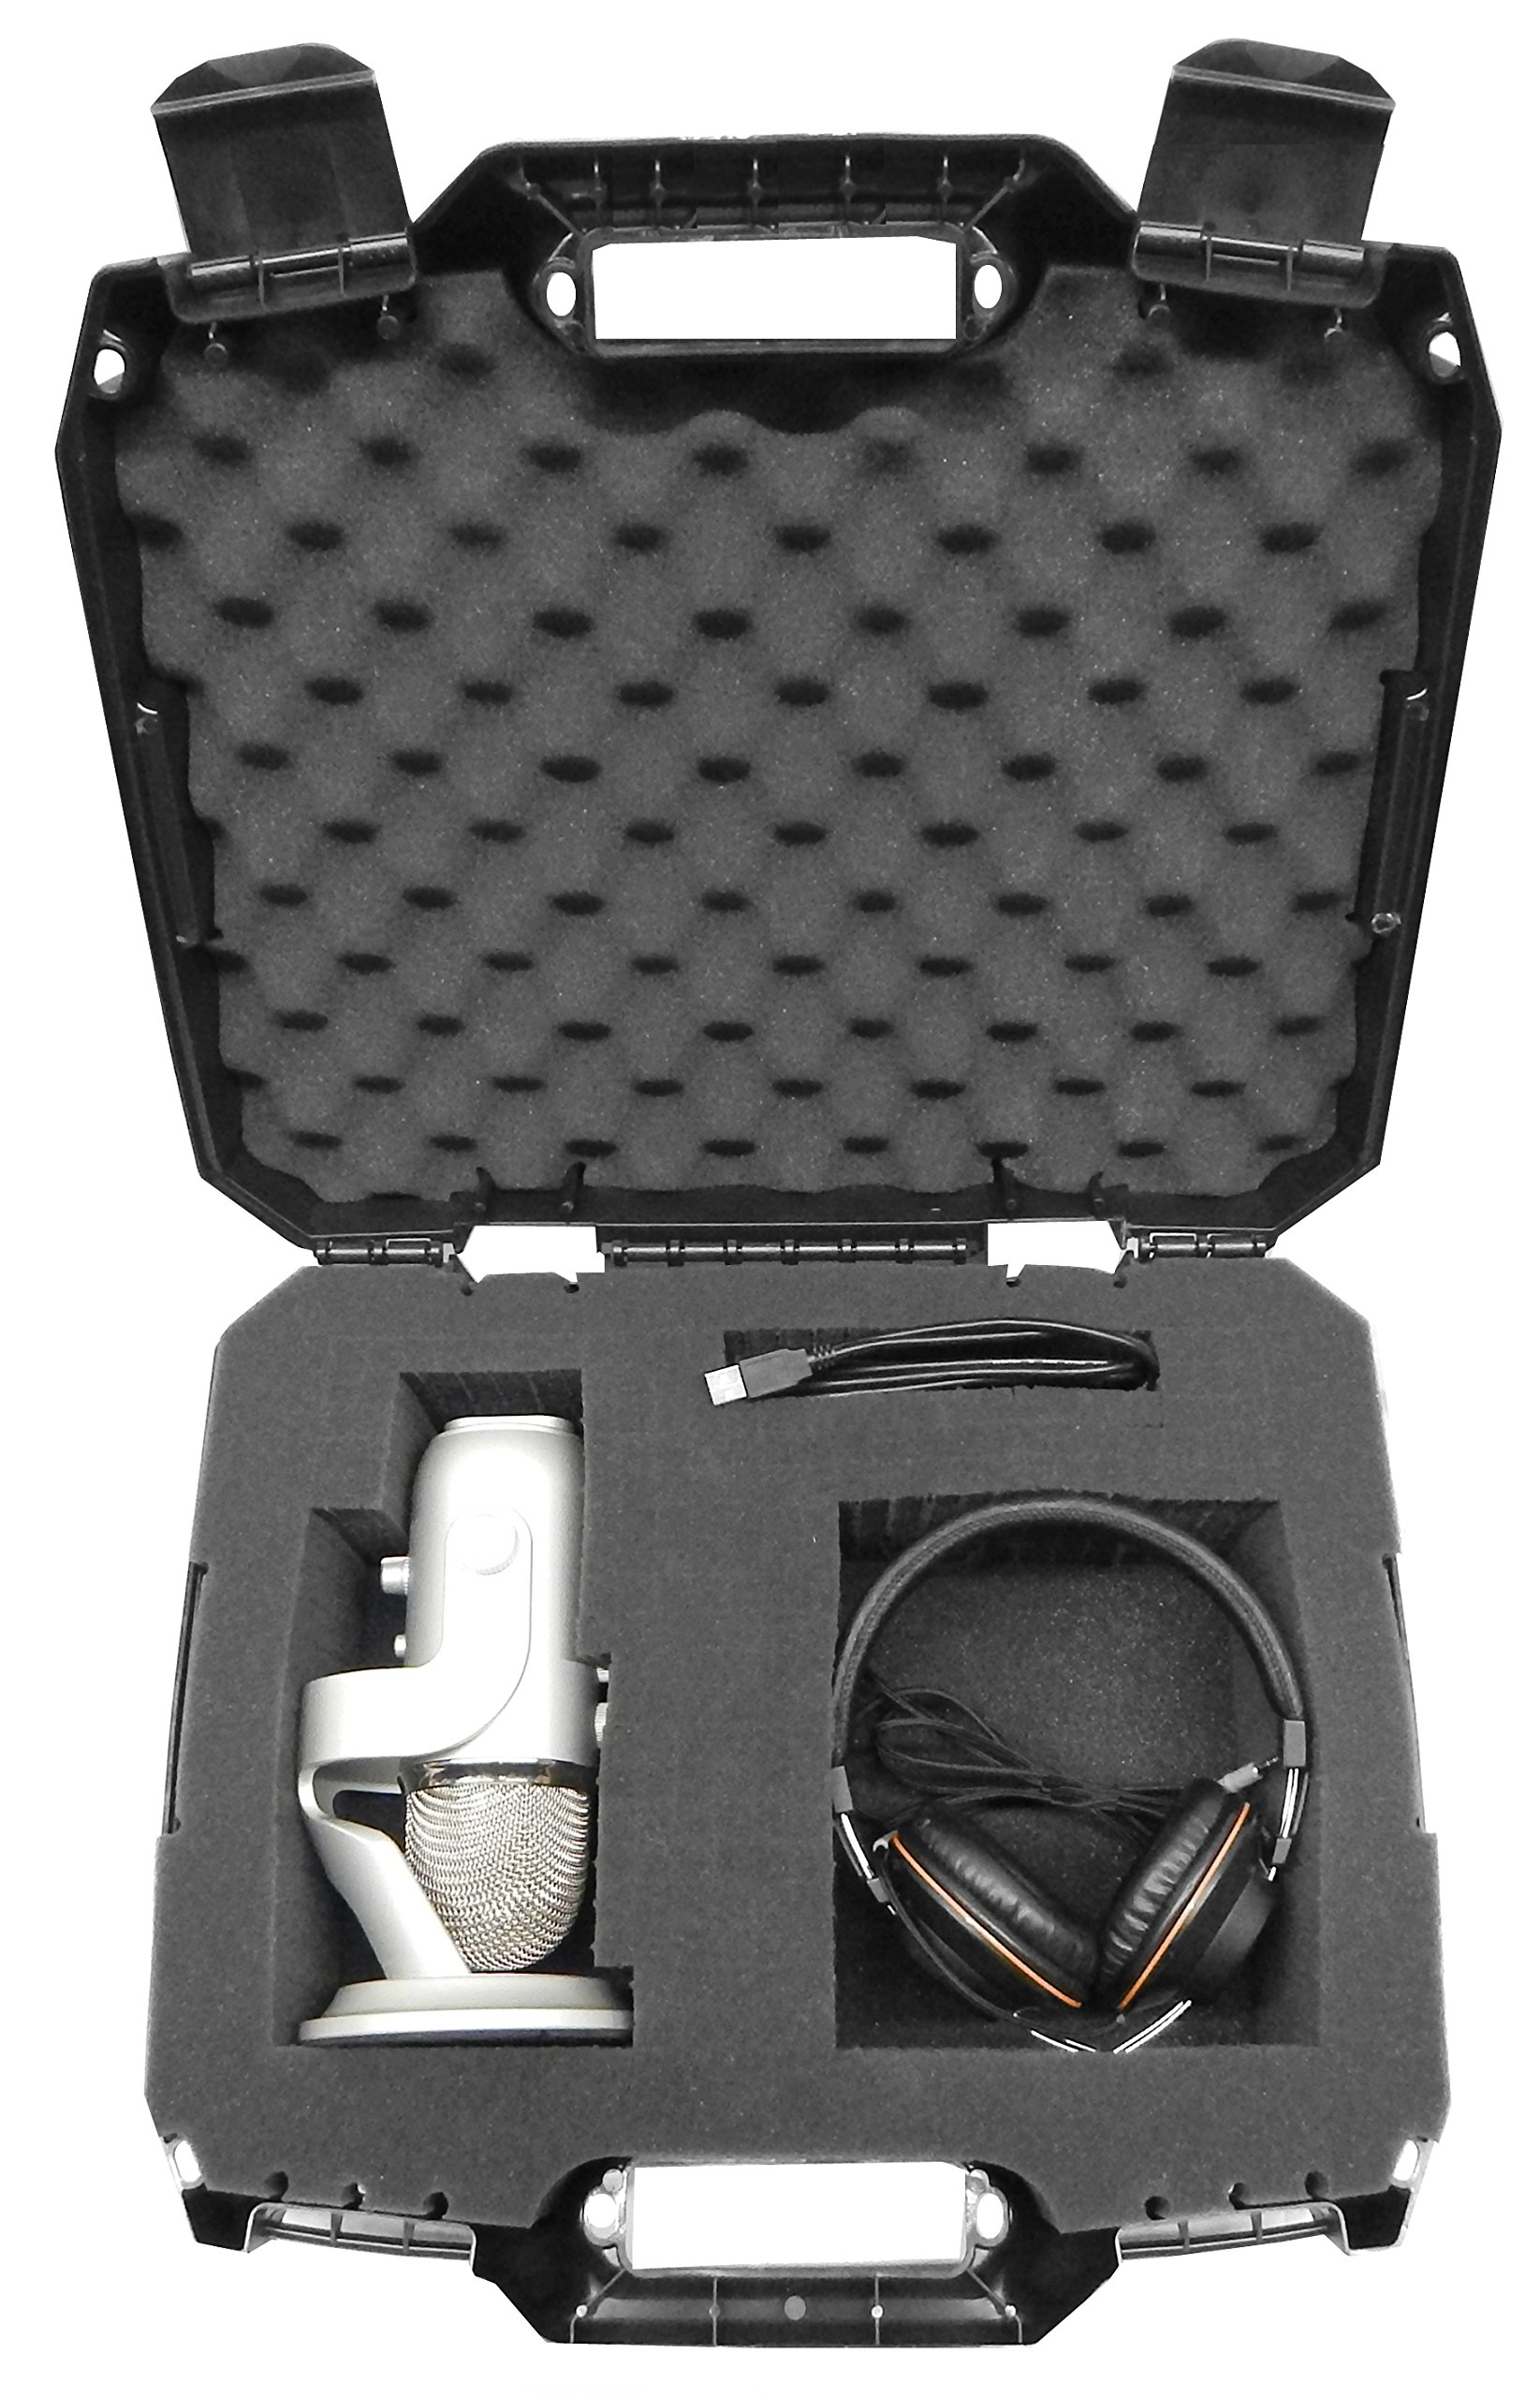 Casematix Microphone and Recording Equipment Carry Hard Case with Customizable Foam Fits Blue yeti Microphone, Headphones, Pop Filter, Shock Mount, Windscreen and More Mic Accessories by CASEMATIX